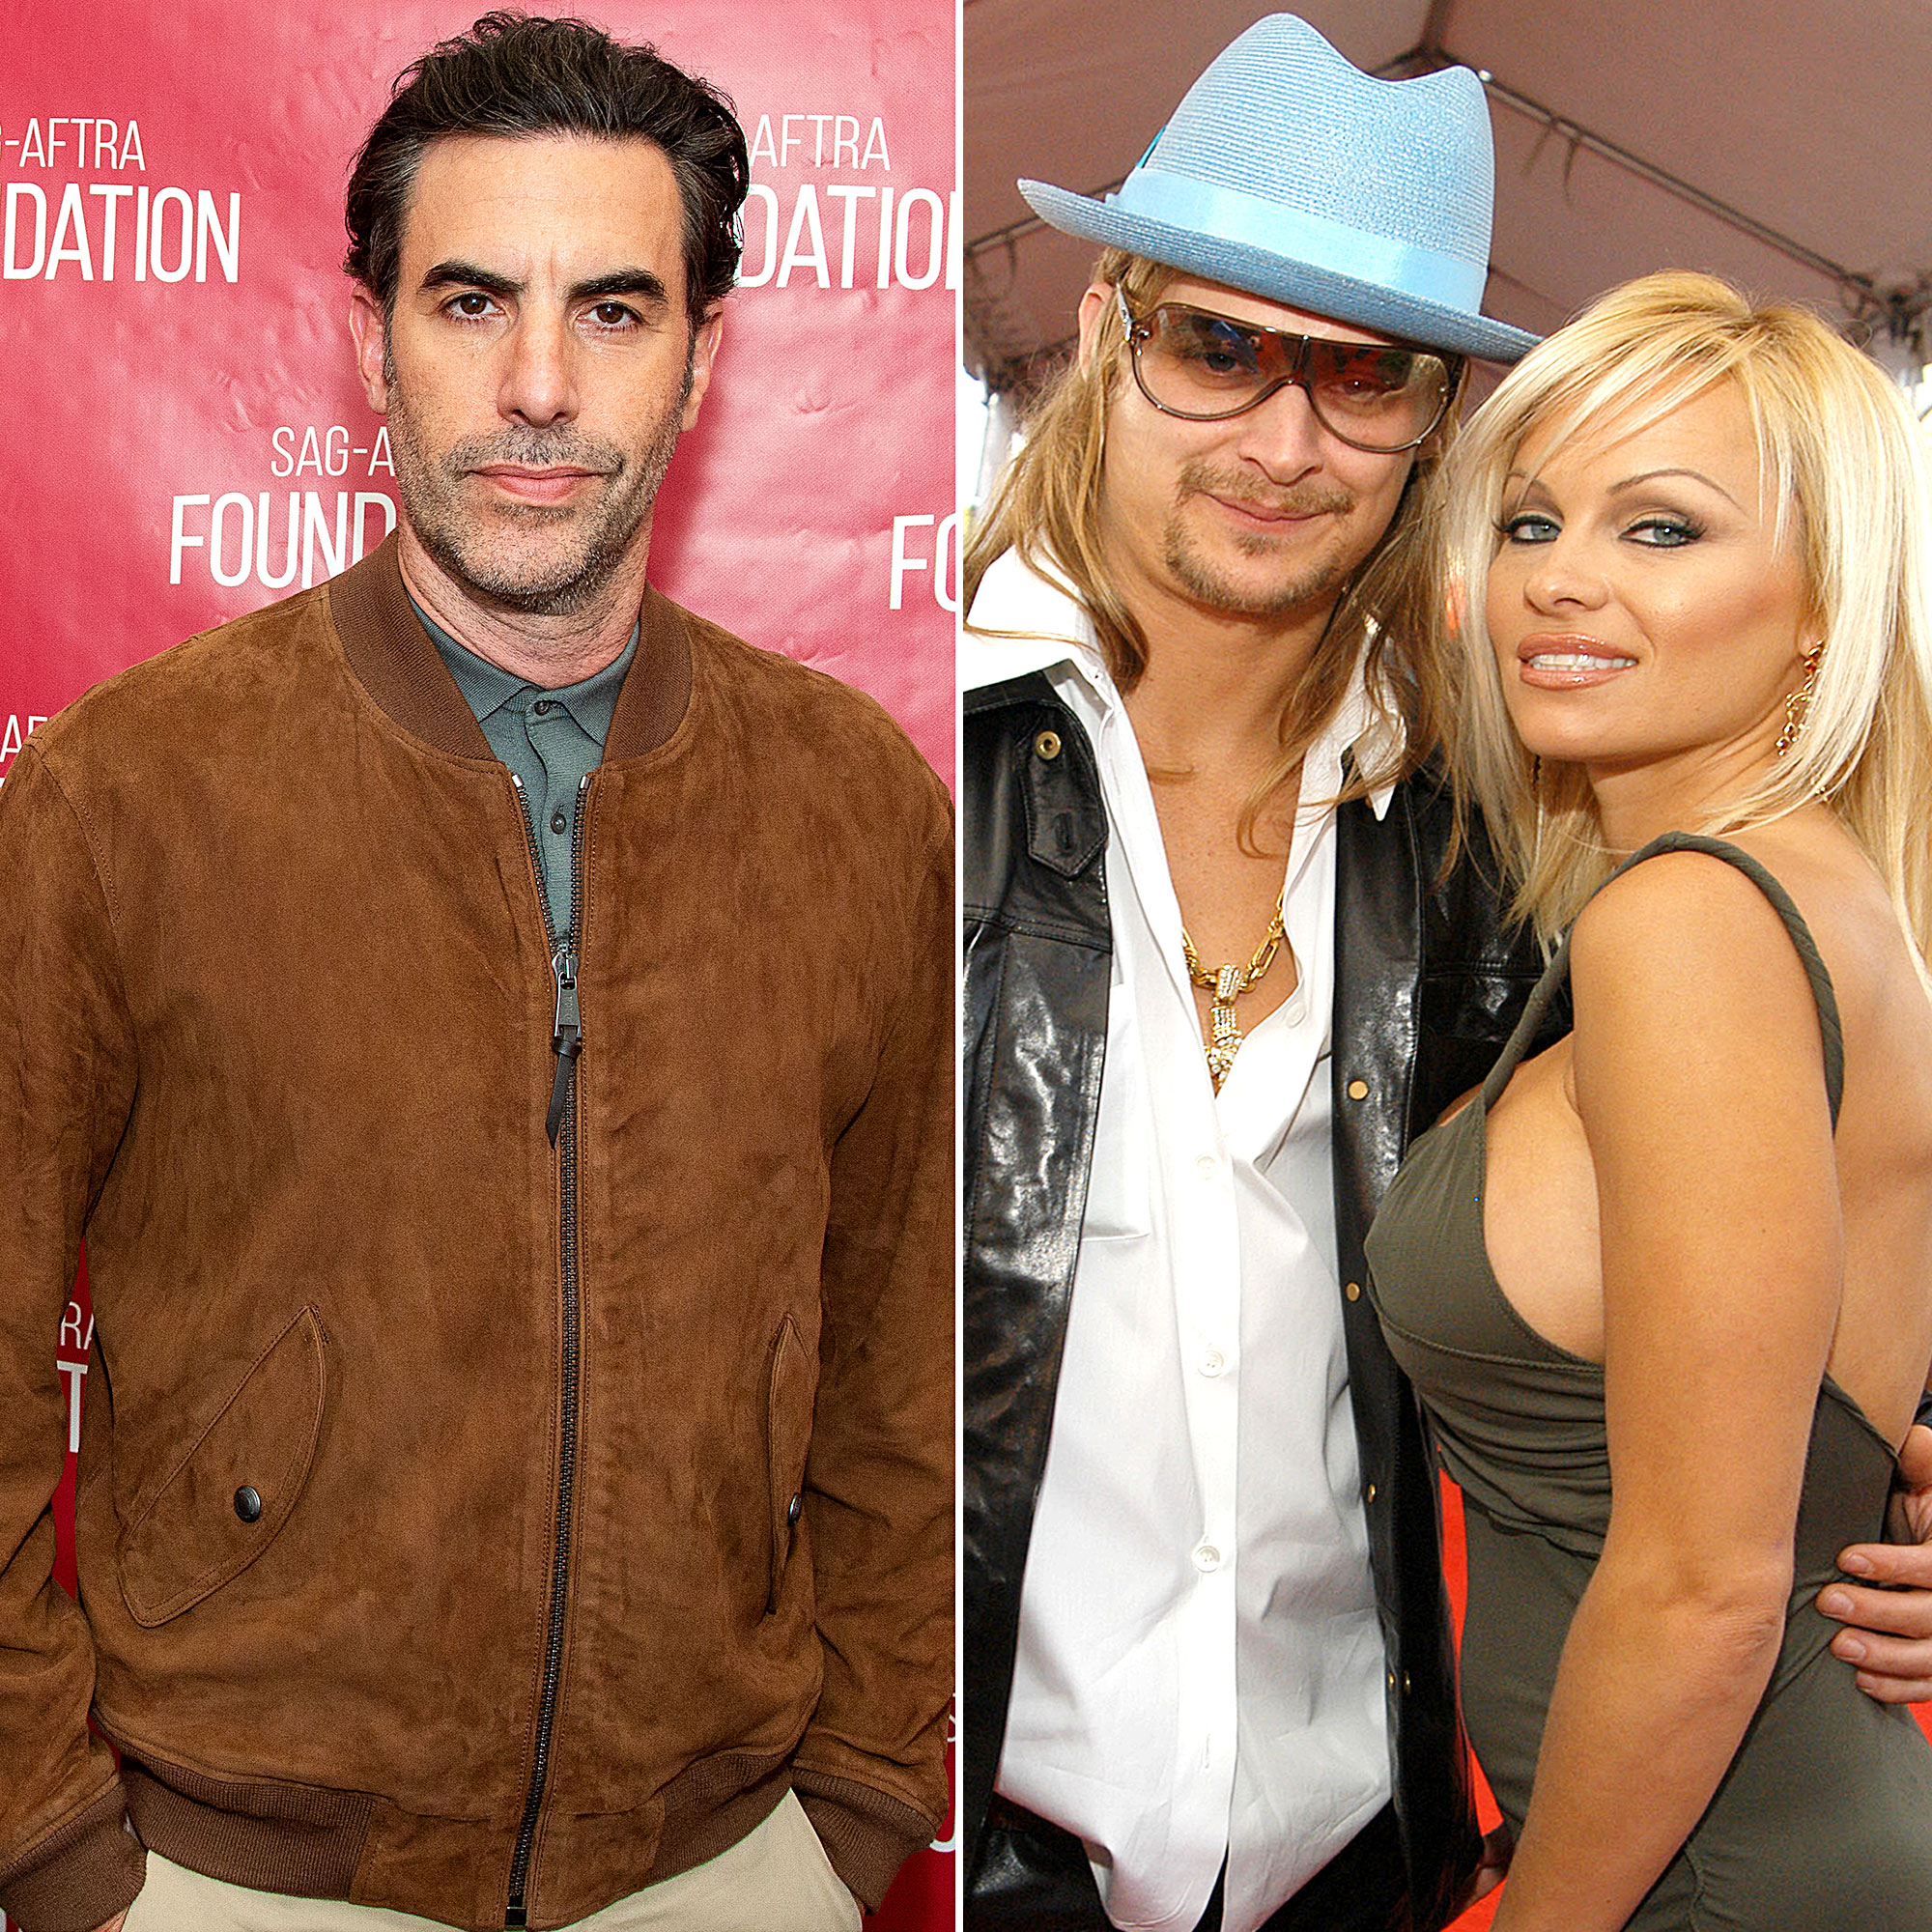 Sacha Baron Cohen Pam Anderson Kid Rock Split Over Borat Character - Sacha Baron Cohen, Kid Rock and Pam Anderson.